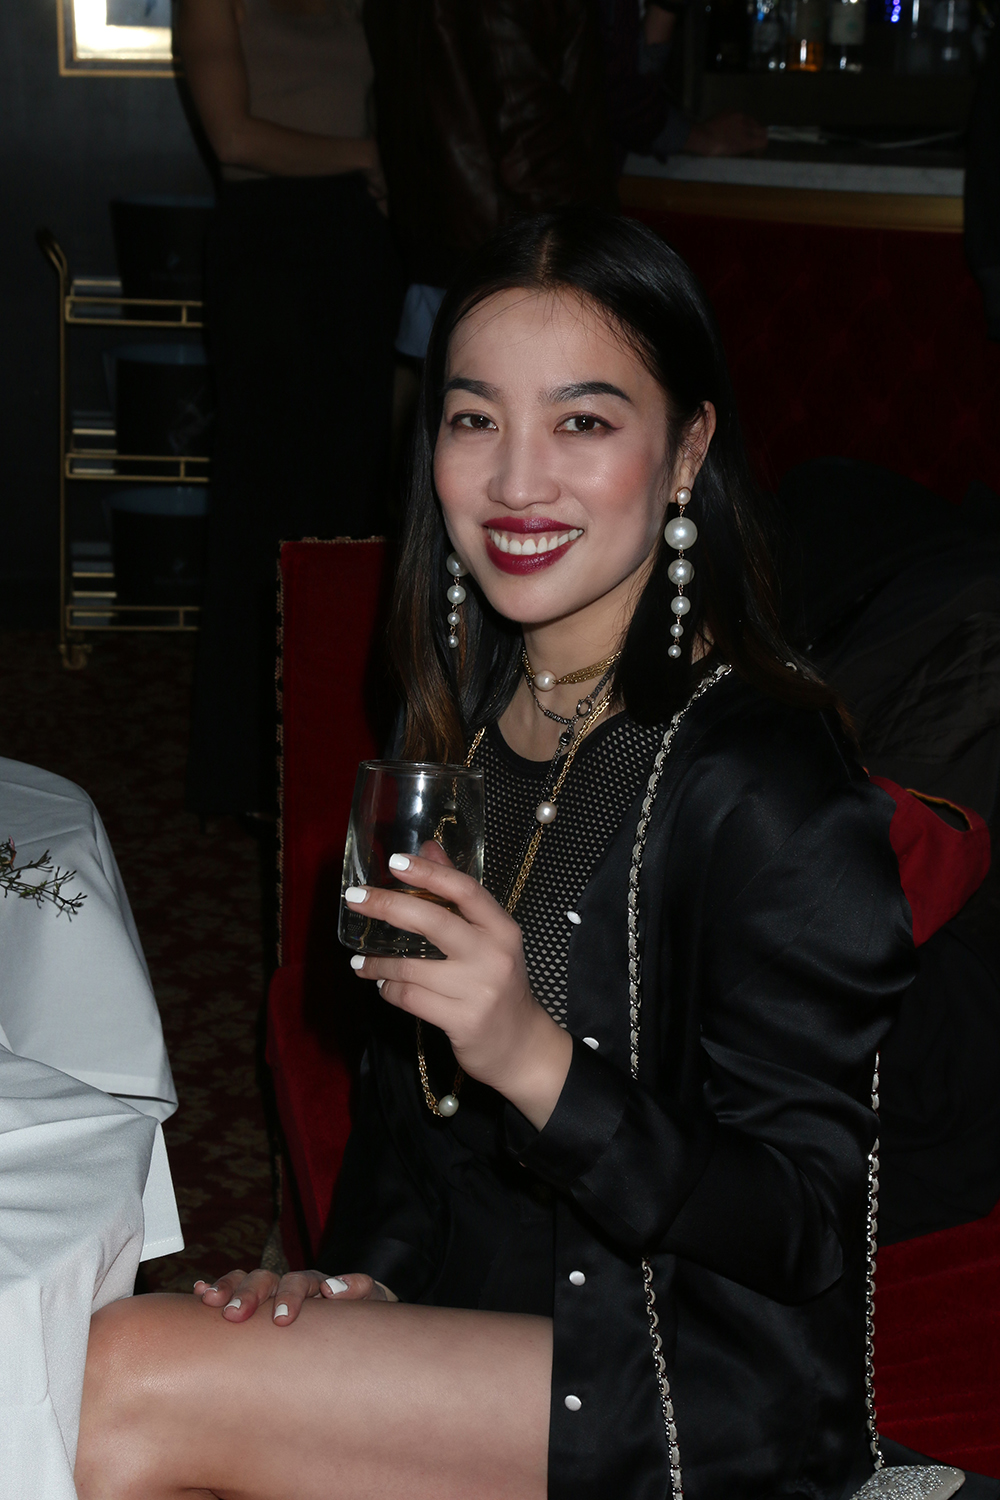 YiZhou hosting Global Intuition x Remy Martin party at Raspoutine in West Hollywood